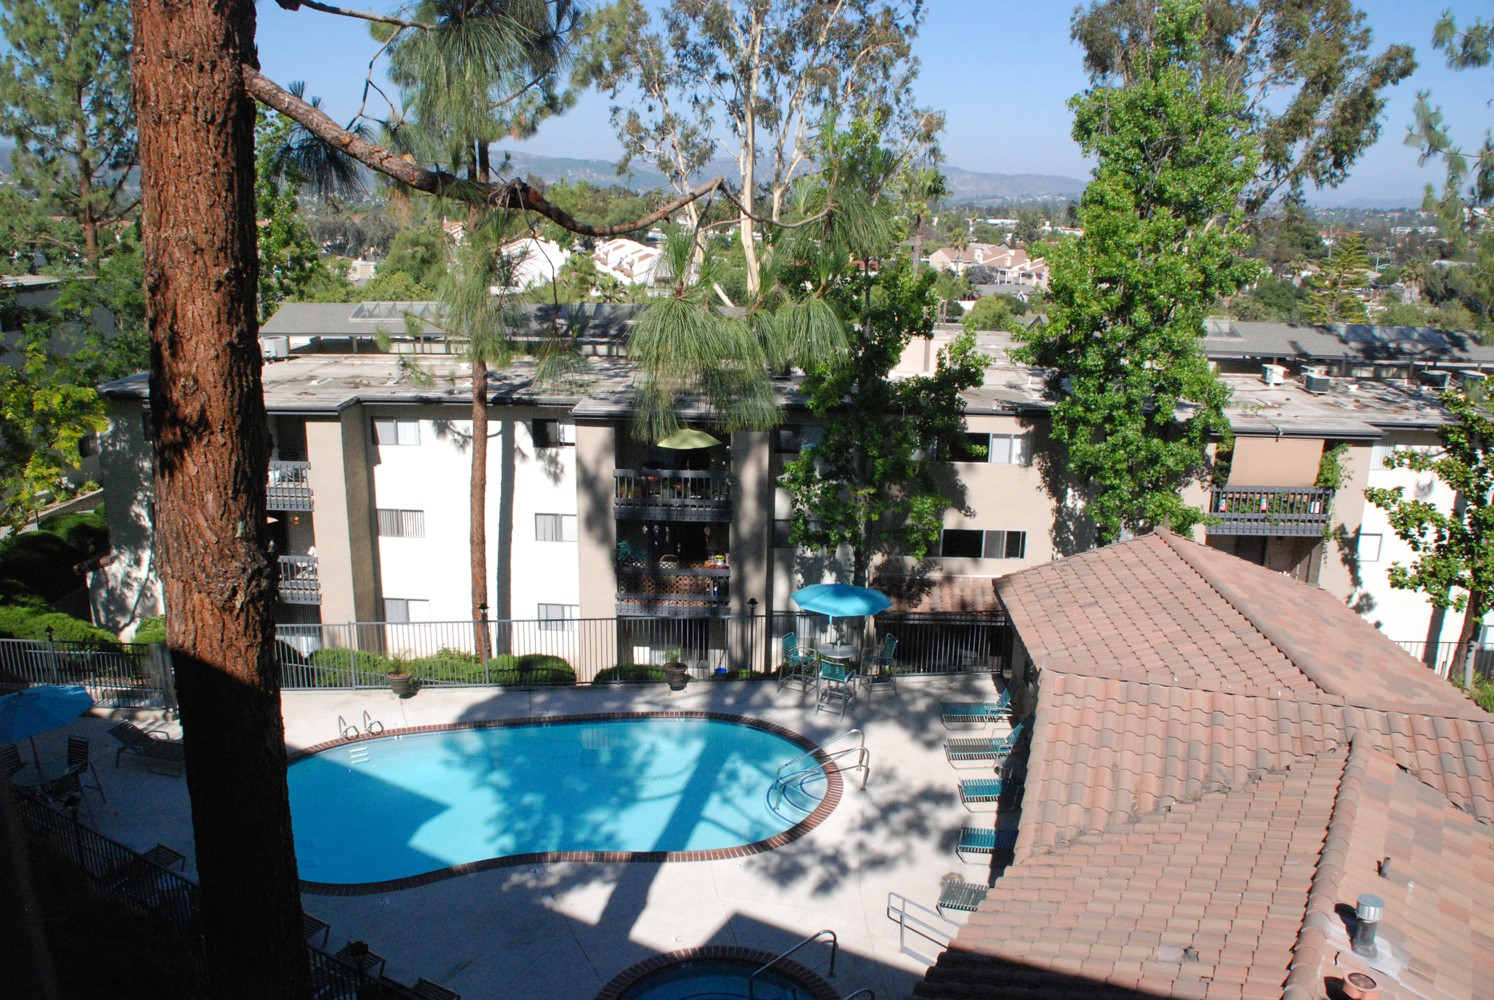 Apartments Near Cal State San Marcos Terrace Gardens- A 55 and Better Community for Cal State San Marcos Students in San Marcos, CA